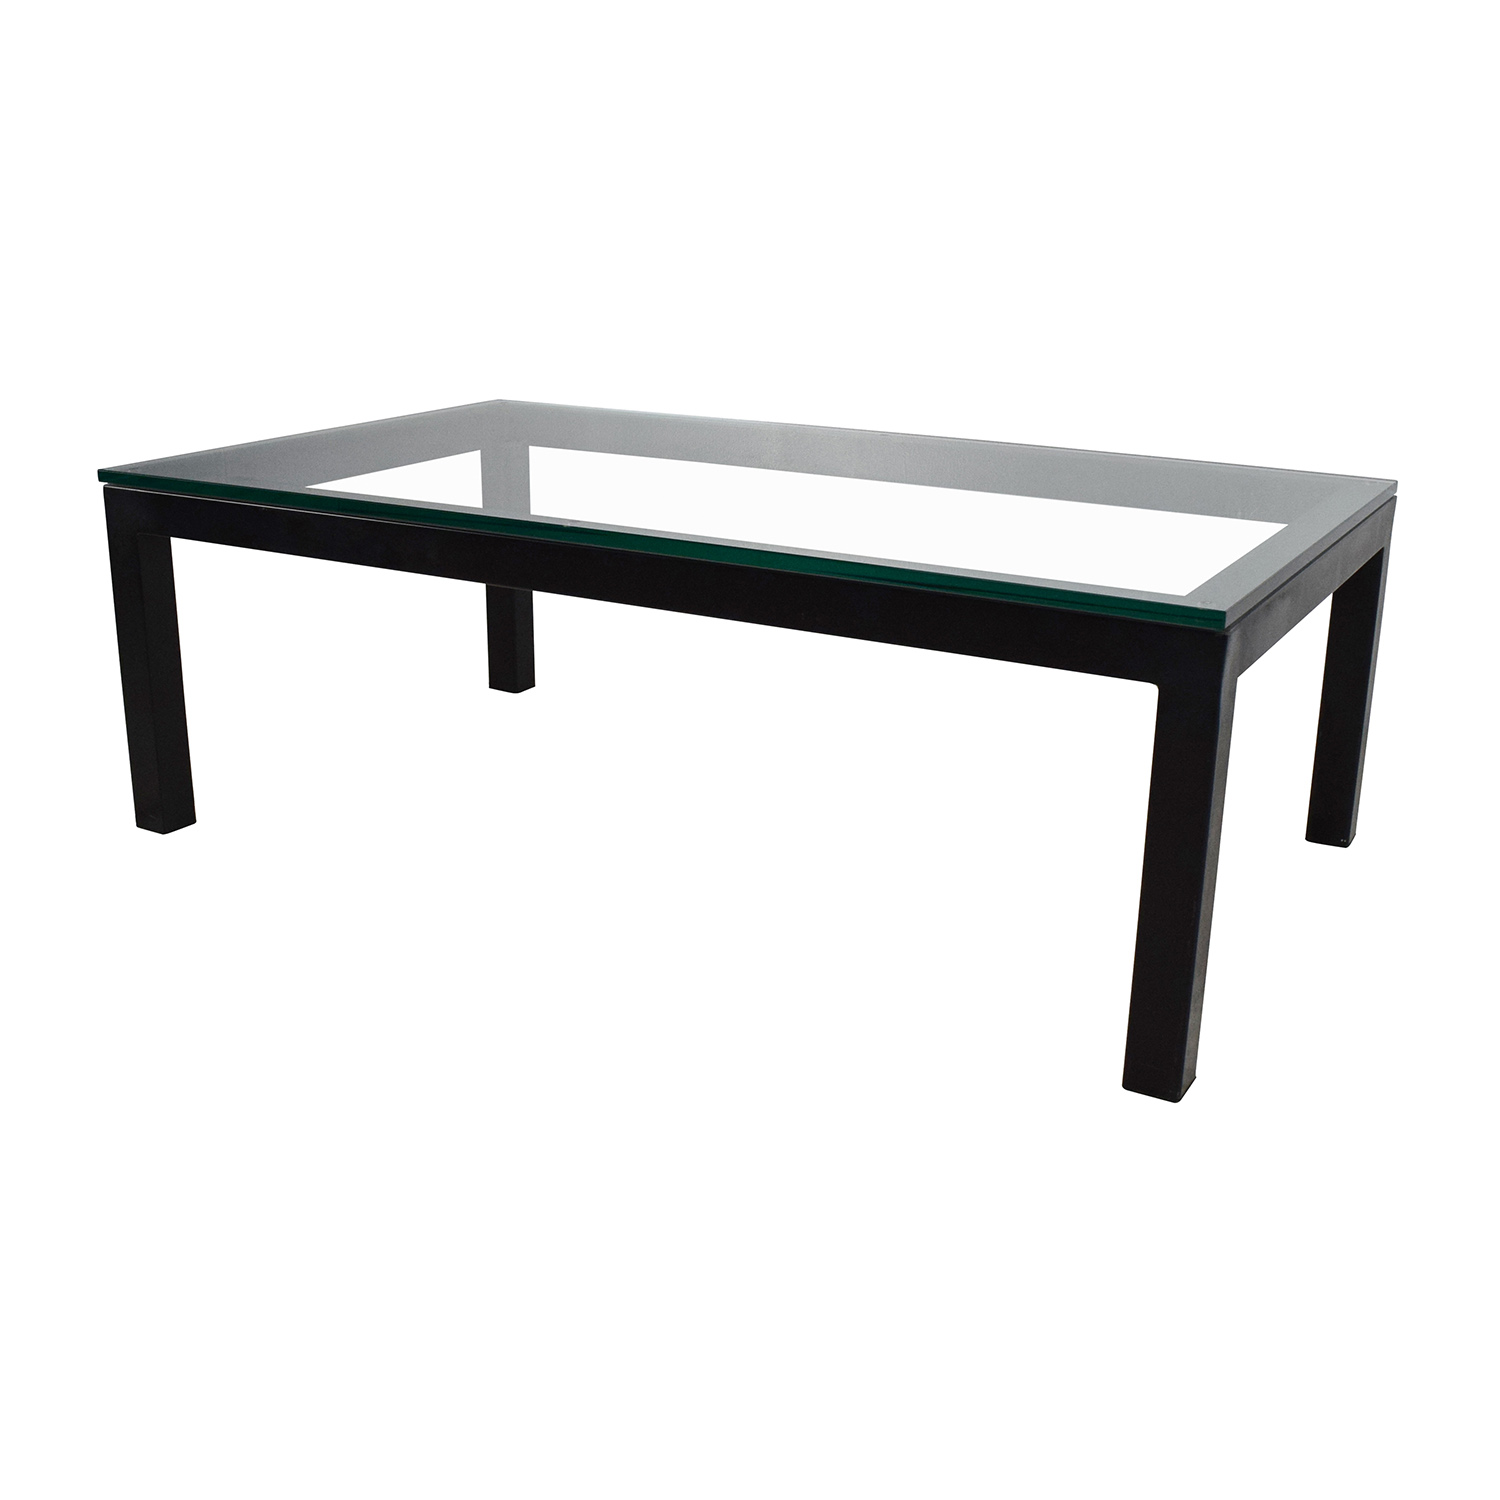 65 Off Crate And Barrel Crate Barrel Parsons Coffee Table Tables